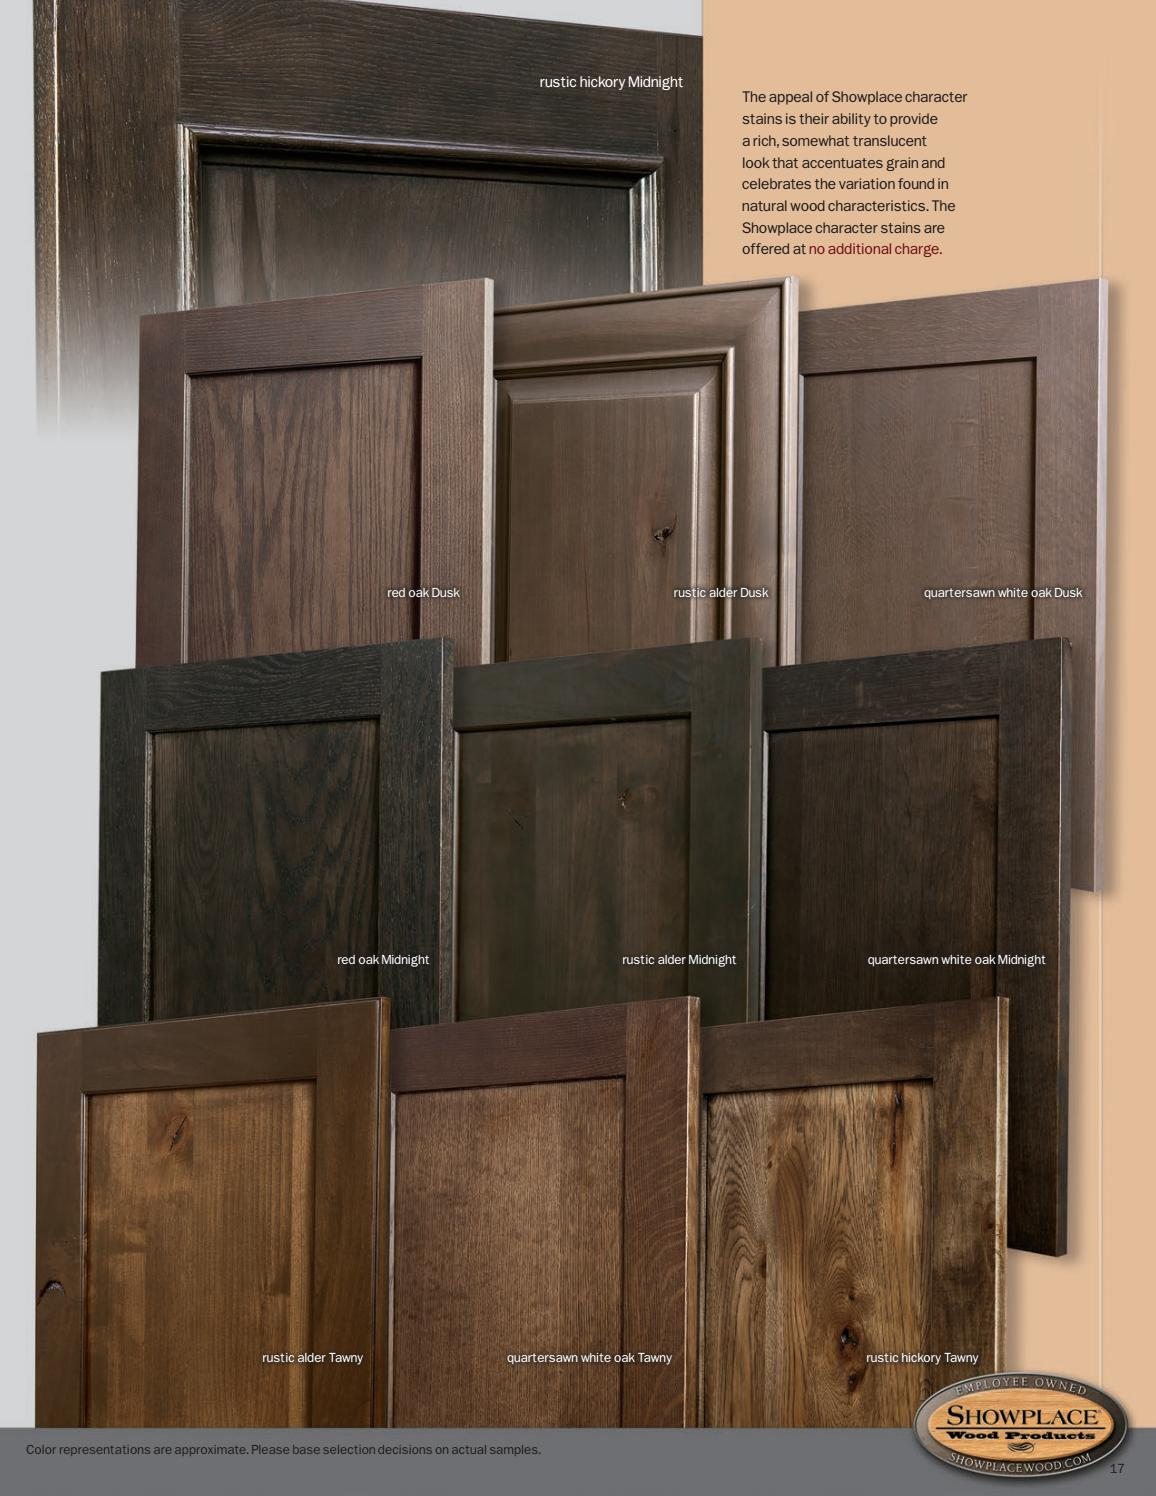 Showplace Cabinetry Styles Woods Amp Finishes Booklet By Showplace Wood Products Issuu